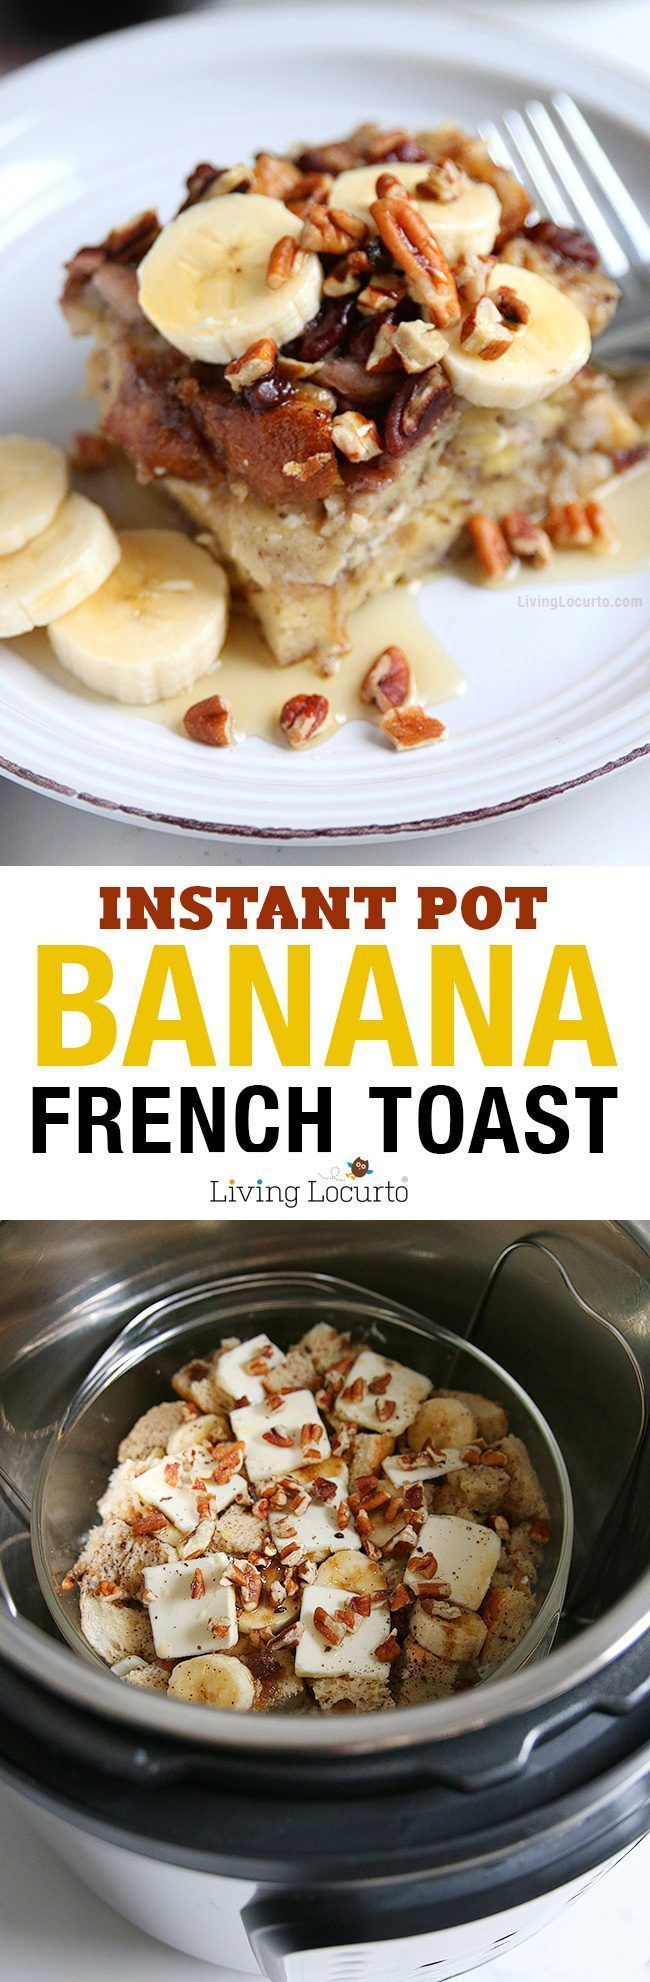 Easy One Pot Meal - Instant Pot Banana French Toast Recipe! How to make french toast in an Instant Pot! This easy Cream Cheese Banana French Toast Recipe is a fast way to make breakfast in a pressure cooker.   #frenchtoast #instantpot #pressurecooker